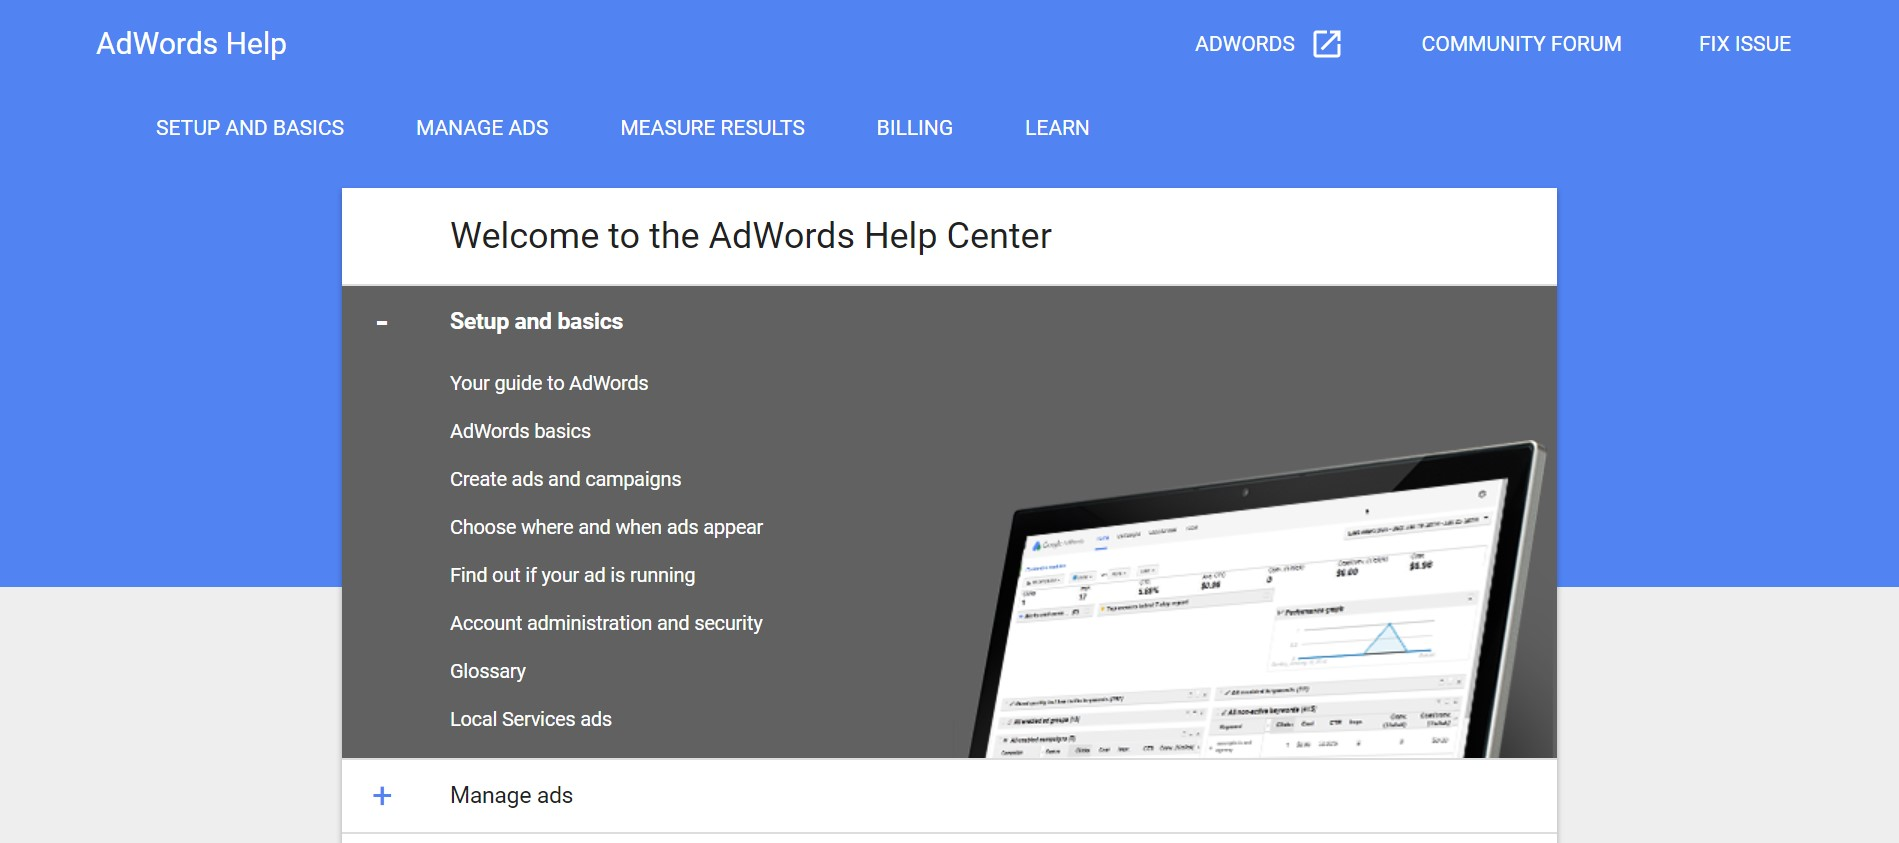 AdWords Help is one of the best websites for Google AdWords explorers.